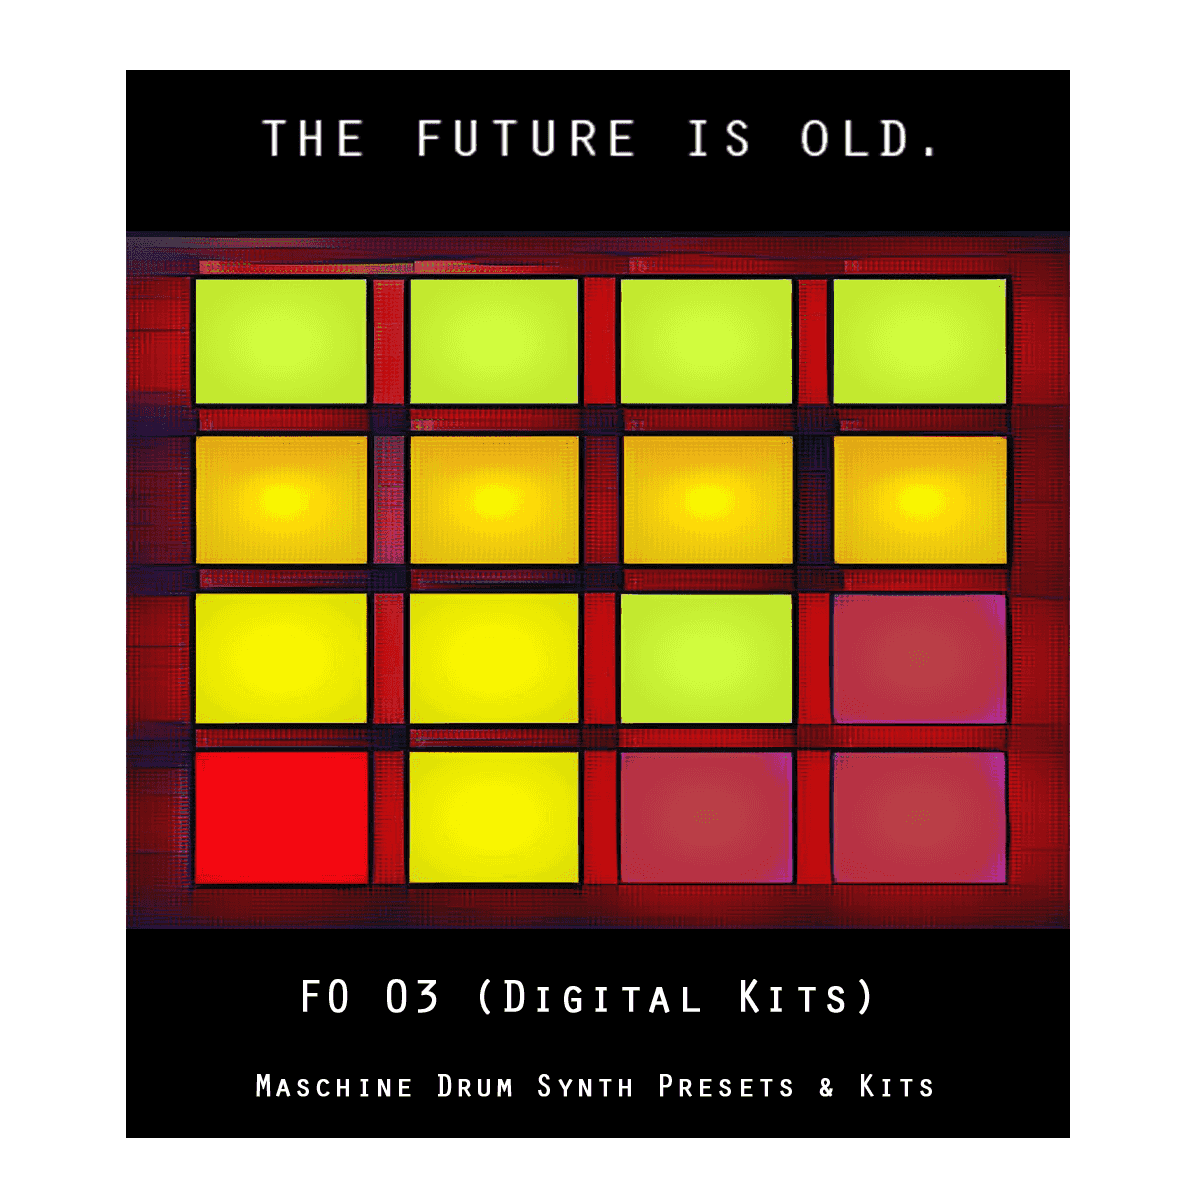 FO 03 (Digital Kits) Presets for Maschine 2 Drum Synths